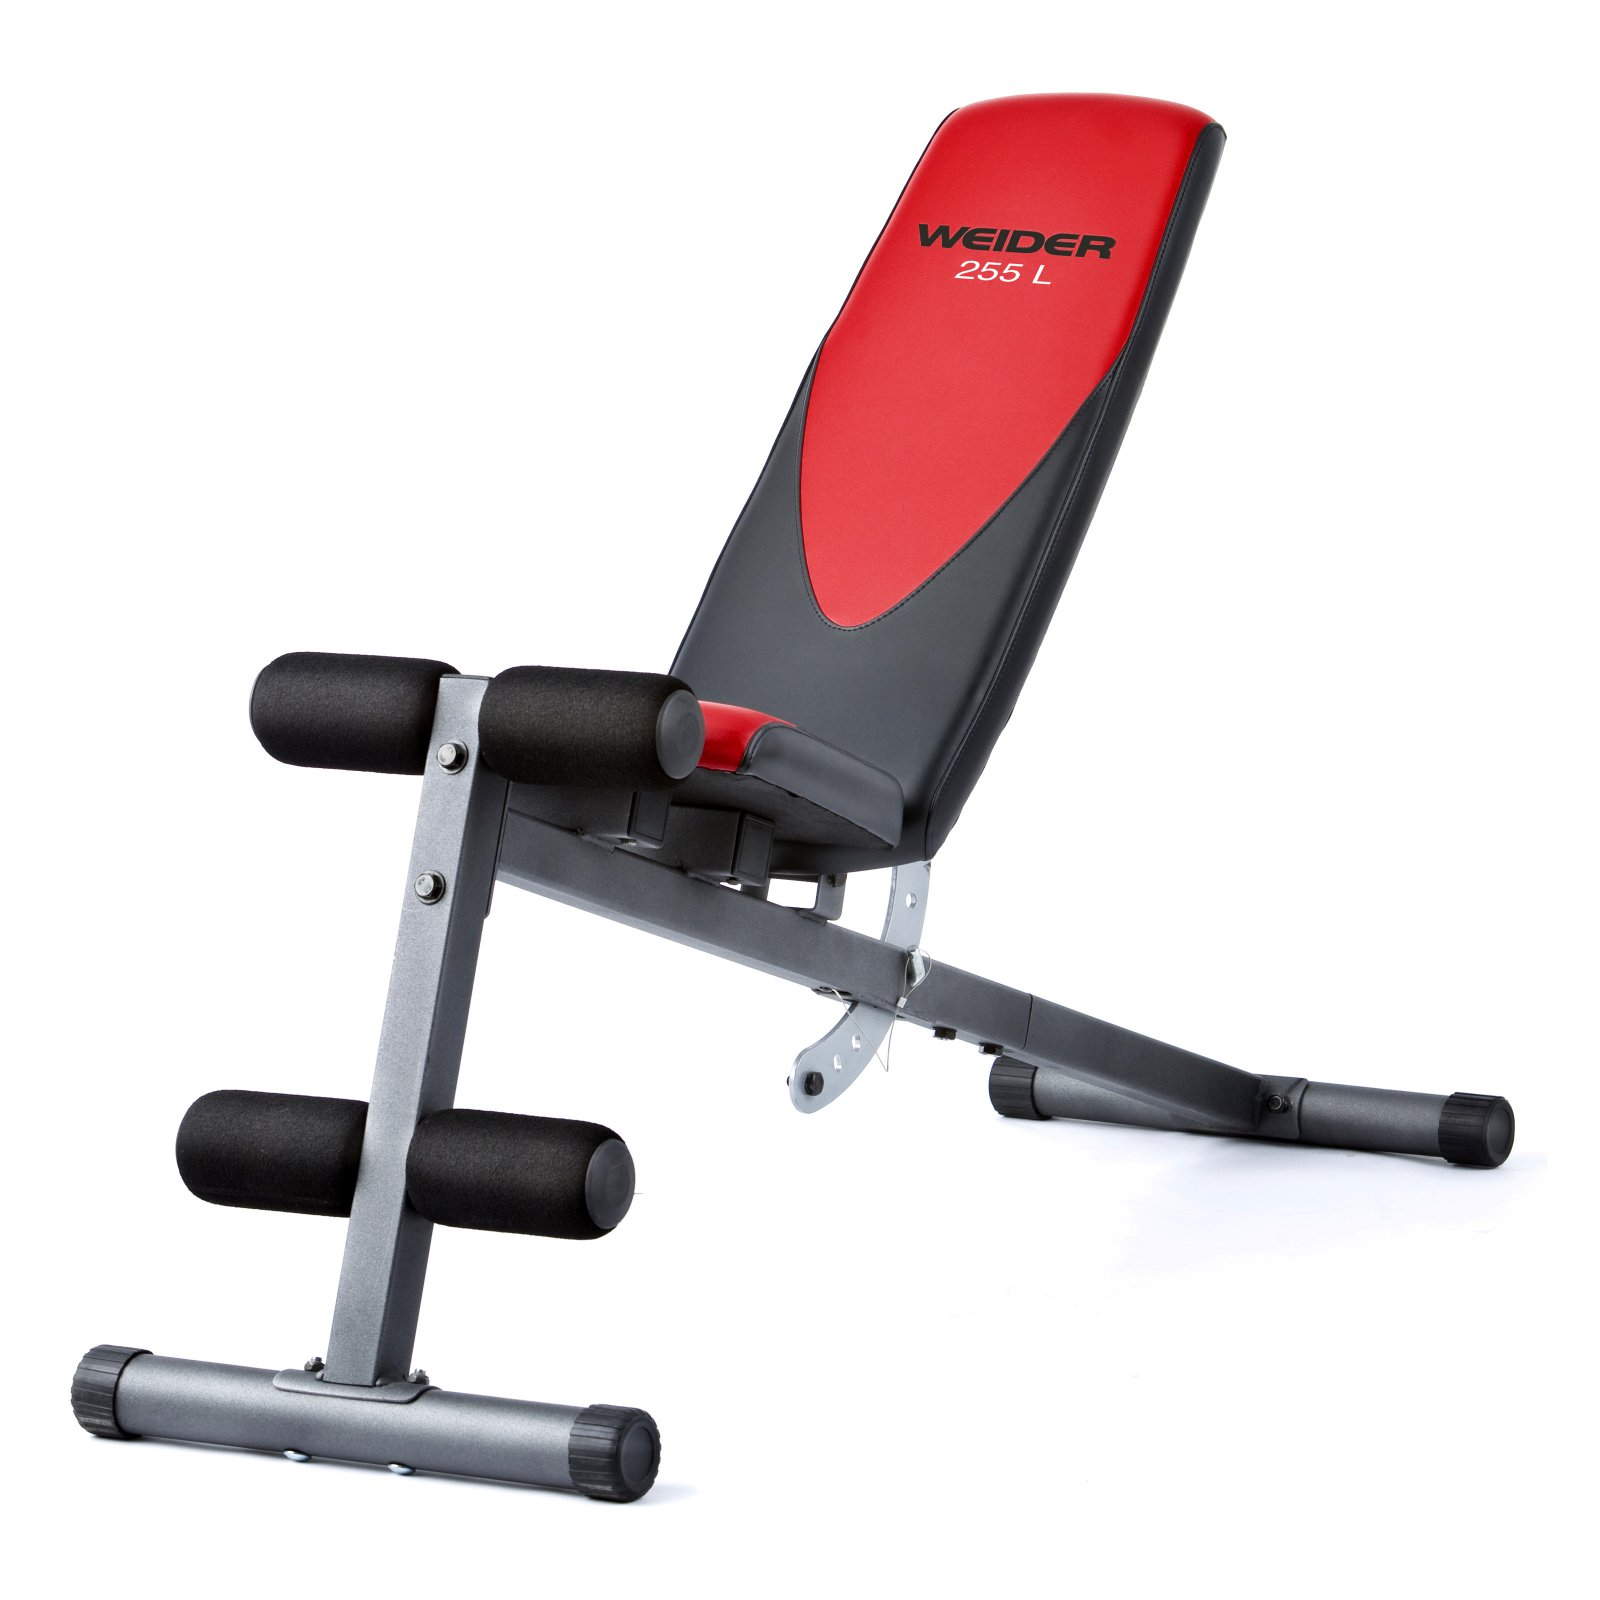 Weider Pro 225 L Bench with Exercise Chart